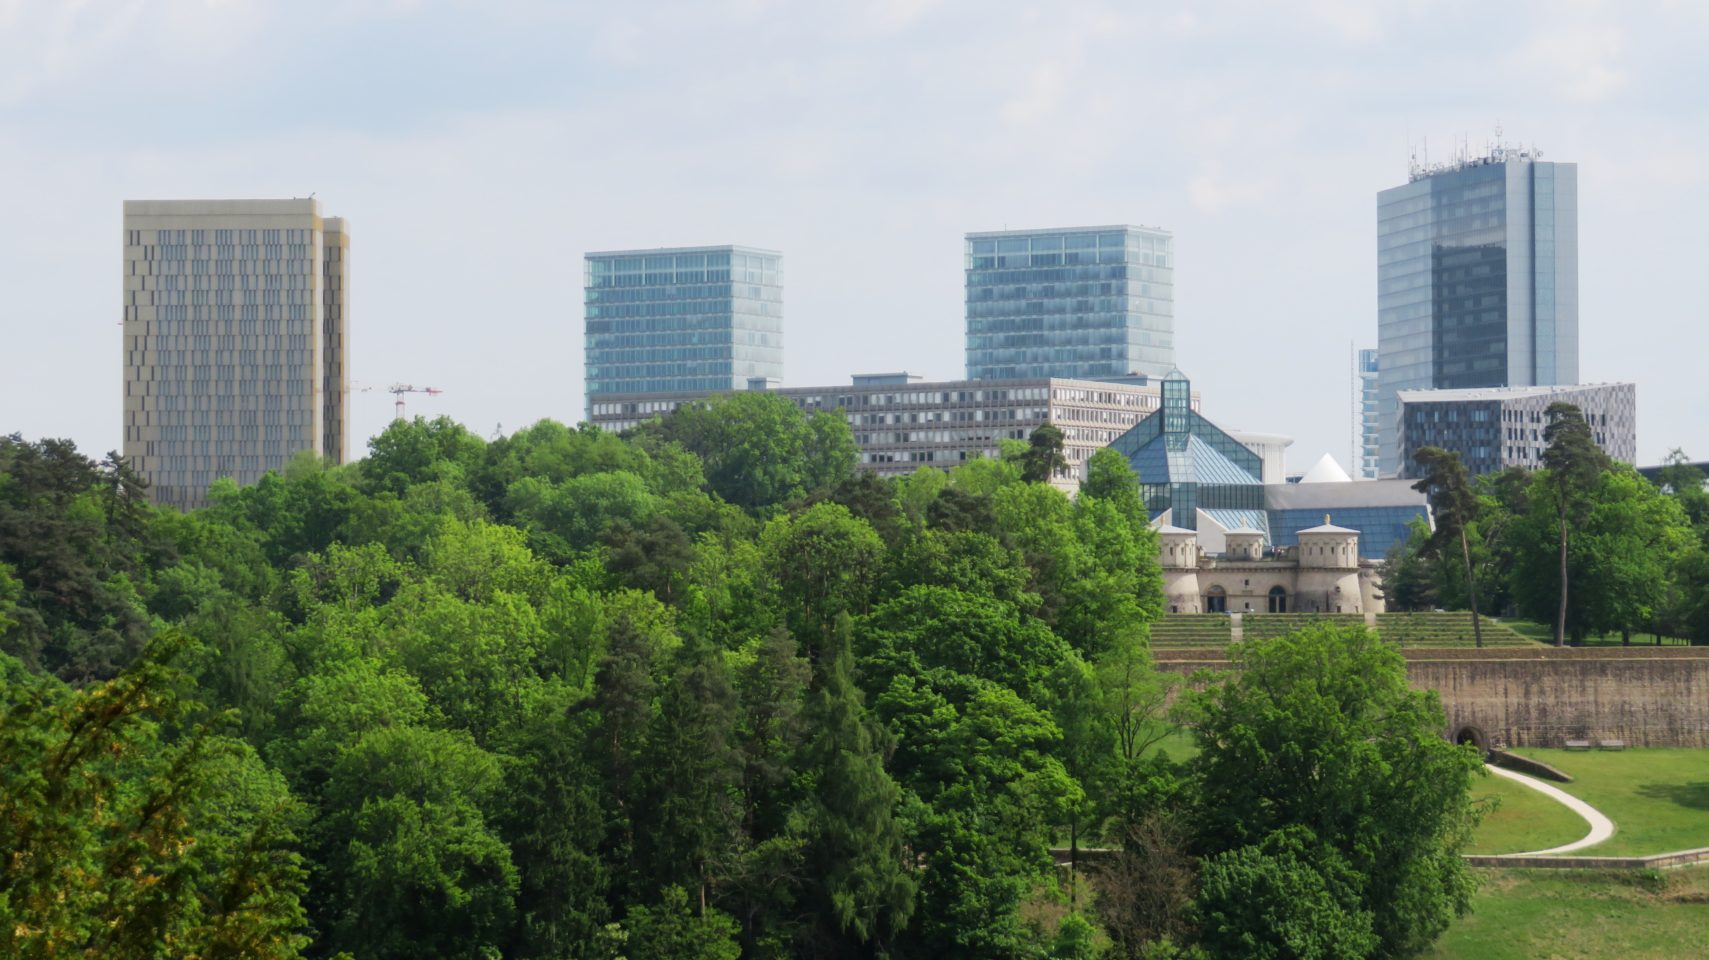 European Quarter in Luxembourg City, Luxembourg